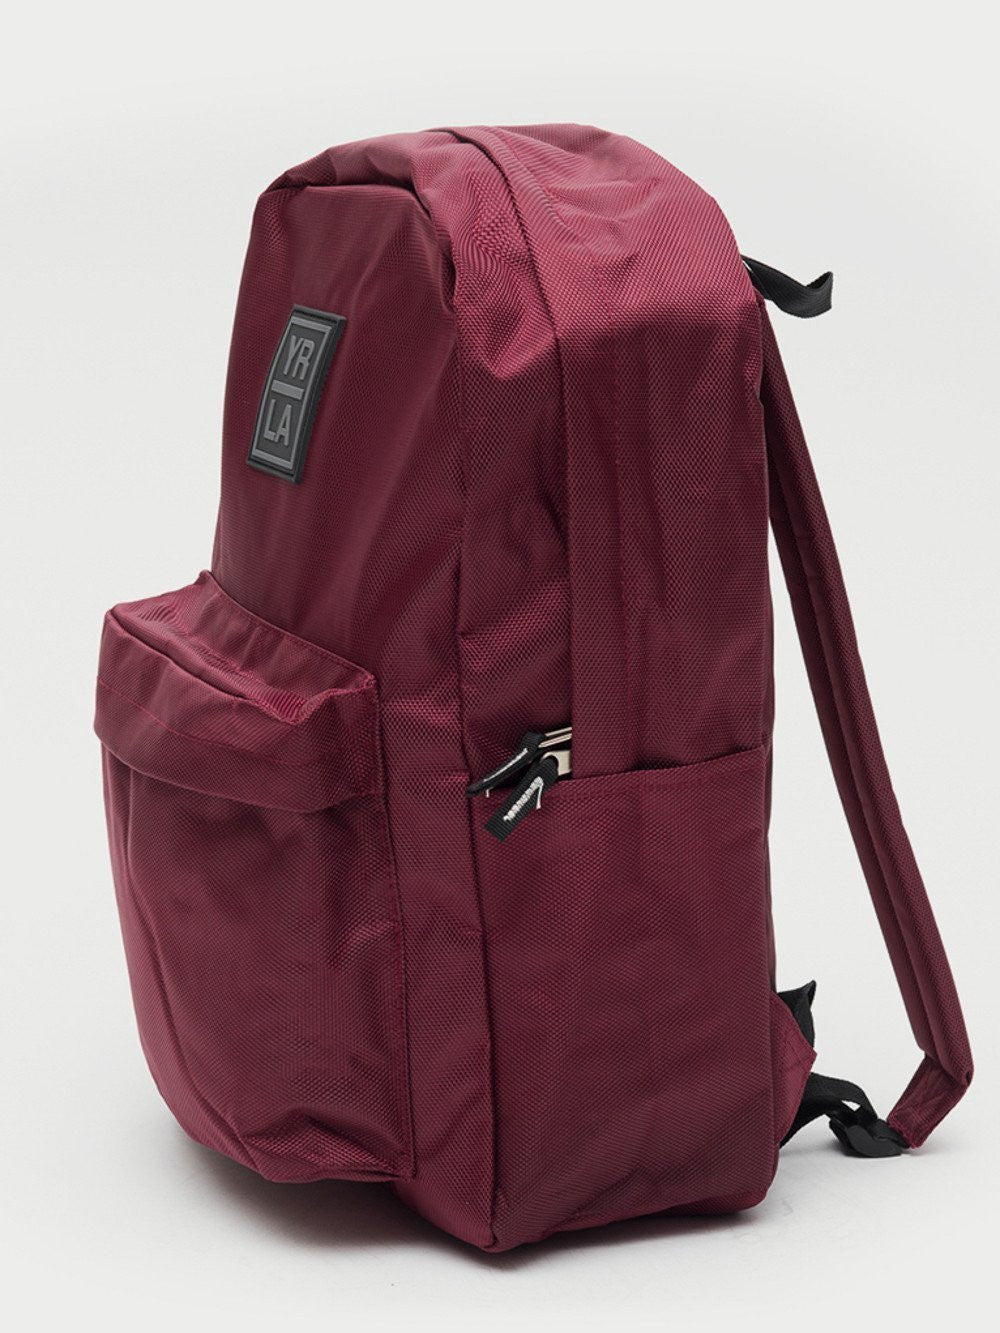 Reckless Girls Womens - Accessories - Bags / Packs Classic Laney Backpack - Maroon